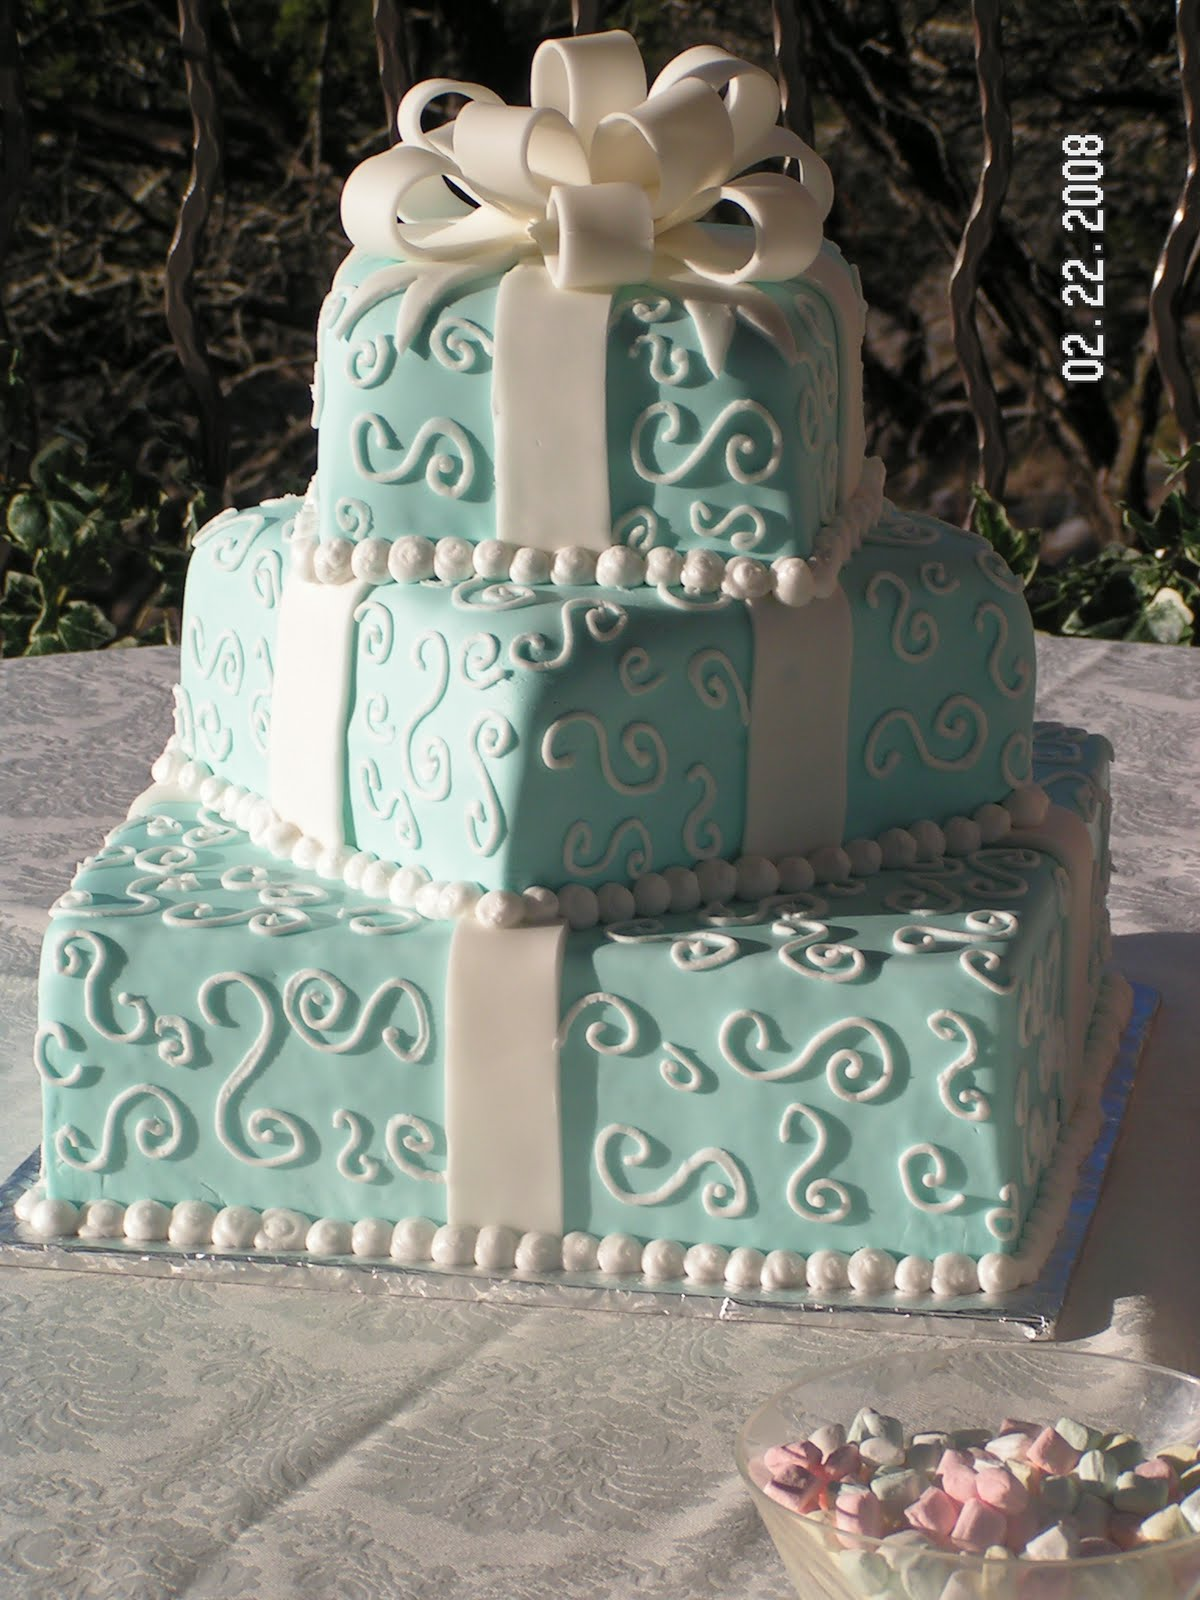 Happy Birthday Ecards Cakes Wishes Sms Dress Recipes Poem